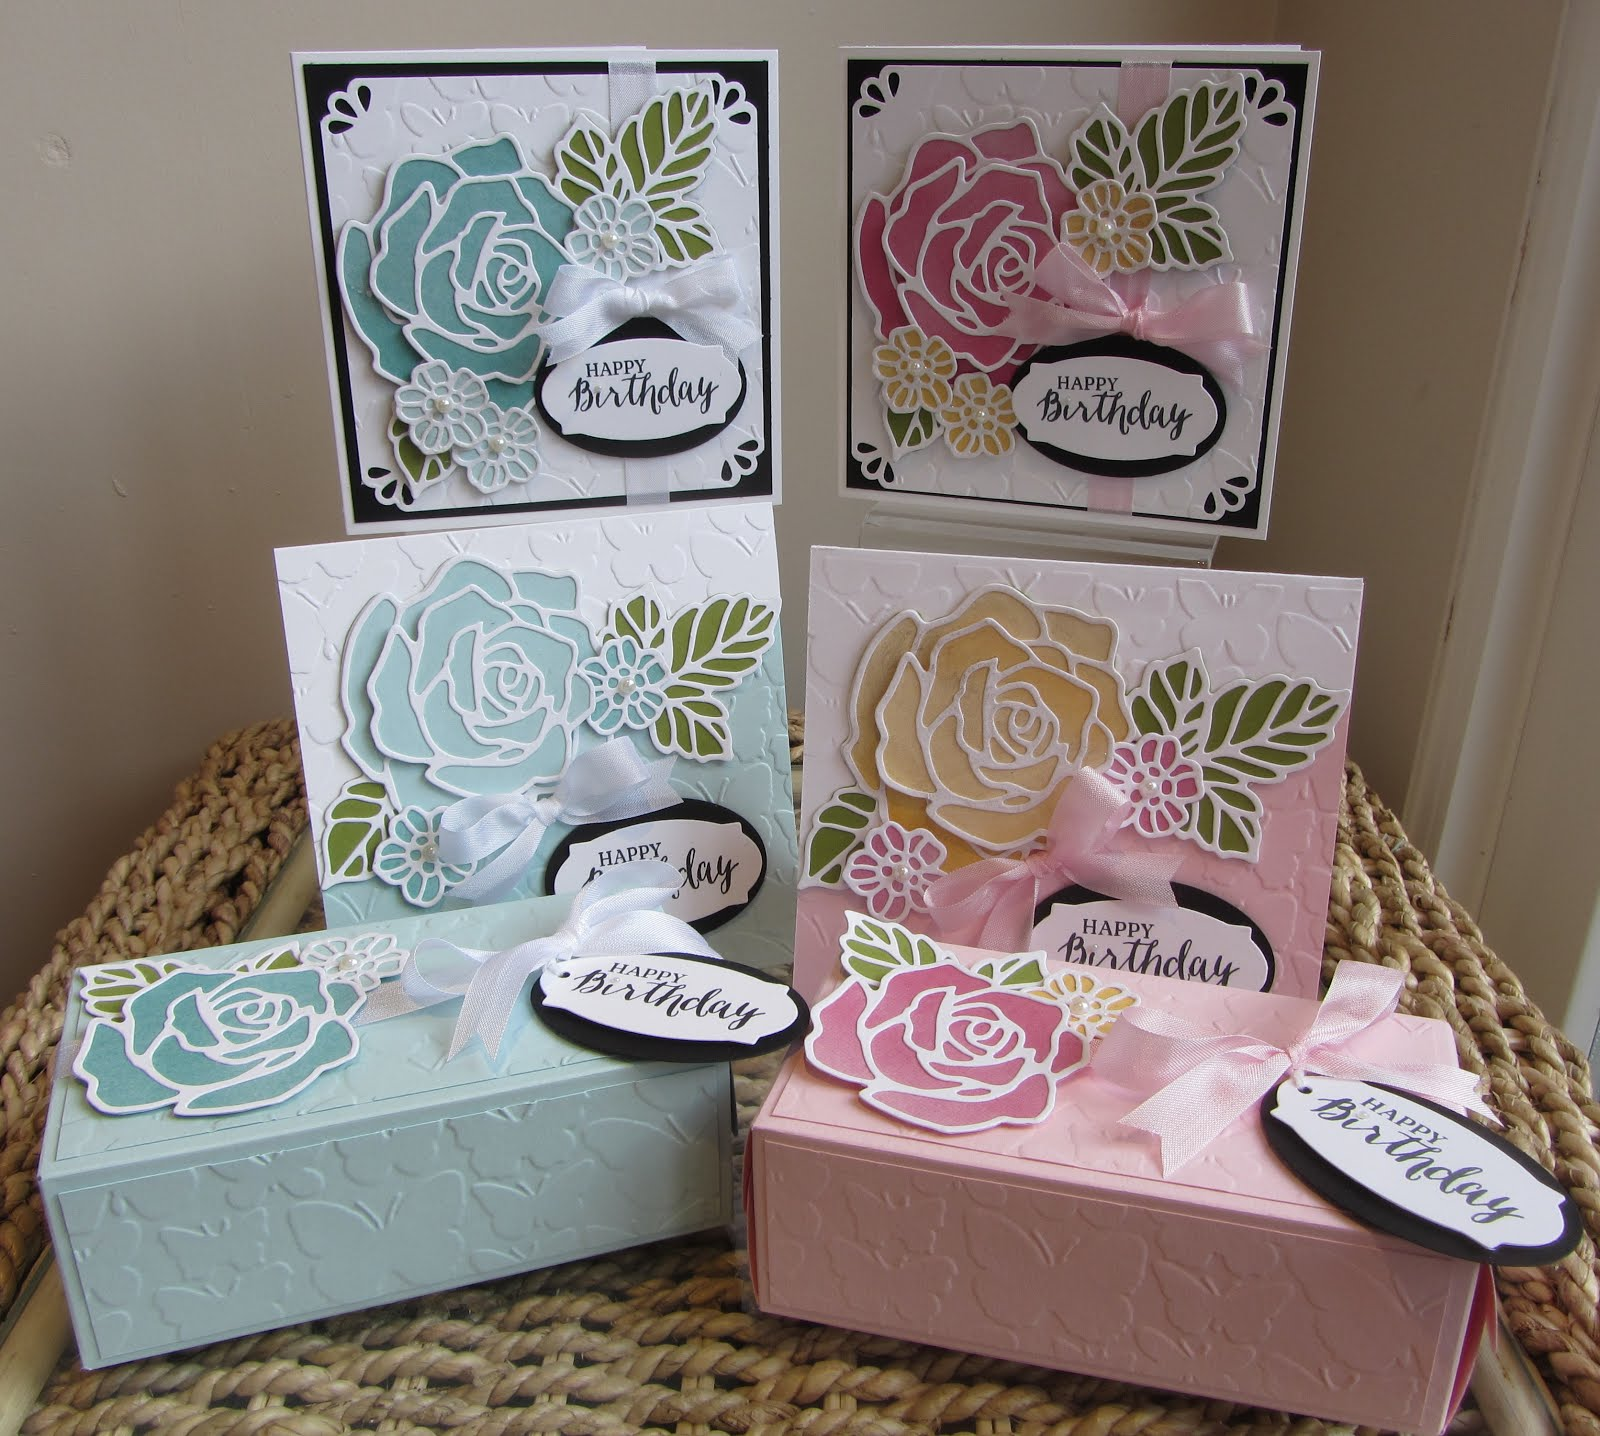 Rose Wonder/Rose Garden Stamp Class